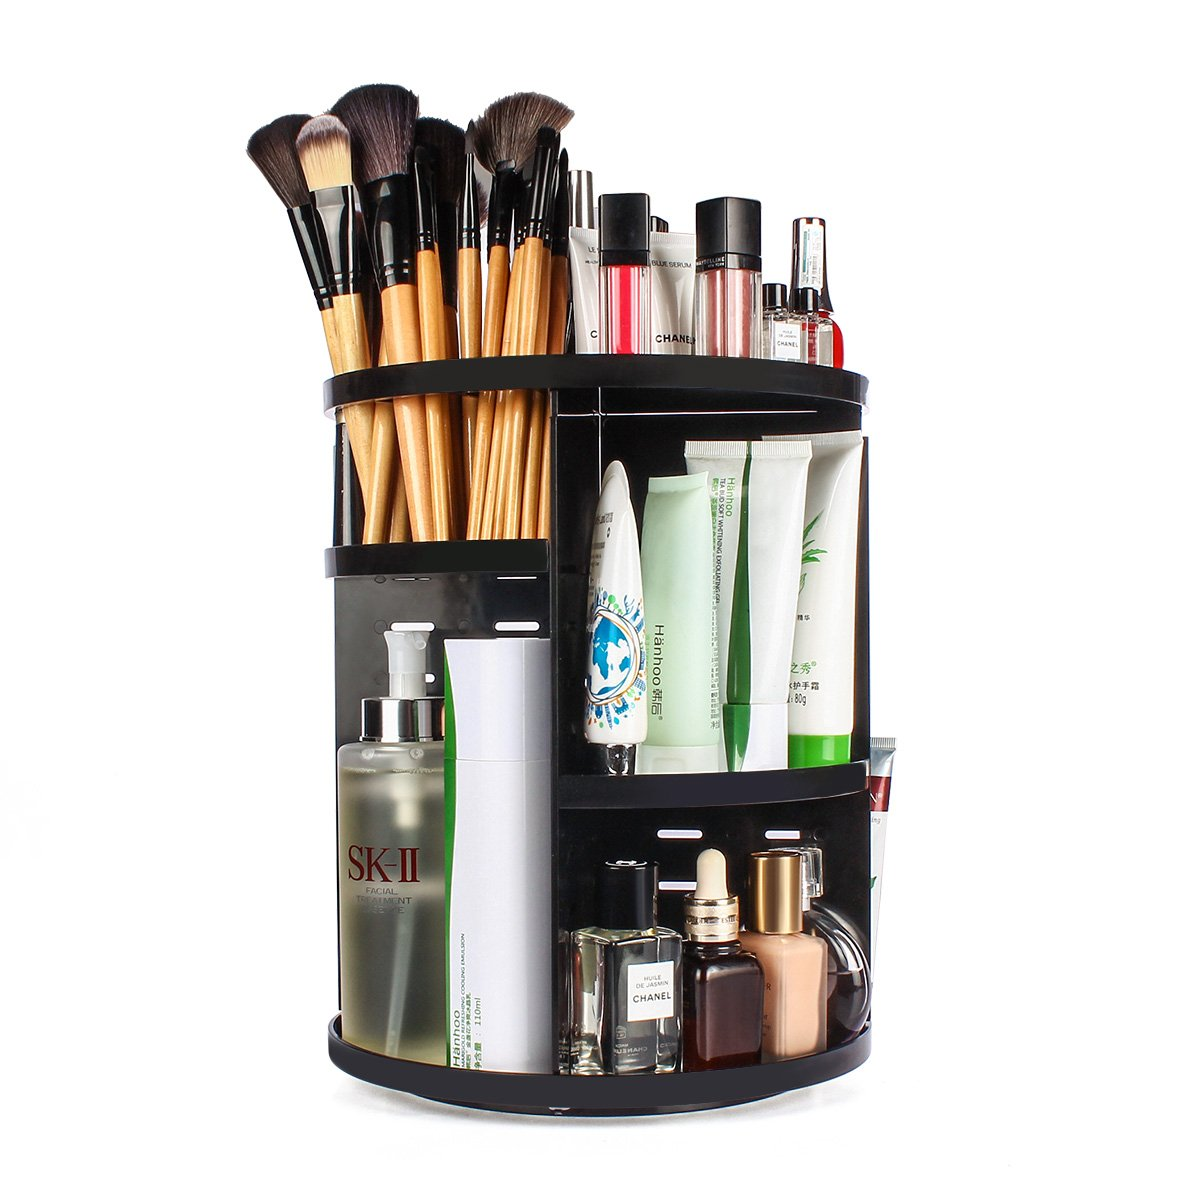 sanipoe 360 Rotating Makeup Organizer, DIY Adjustable Makeup Carousel Spinning Holder Storage Rack, Large Capacity Make up Caddy Shelf Cosmetics Organizer Box, Best for Countertop, Black by sanipoe